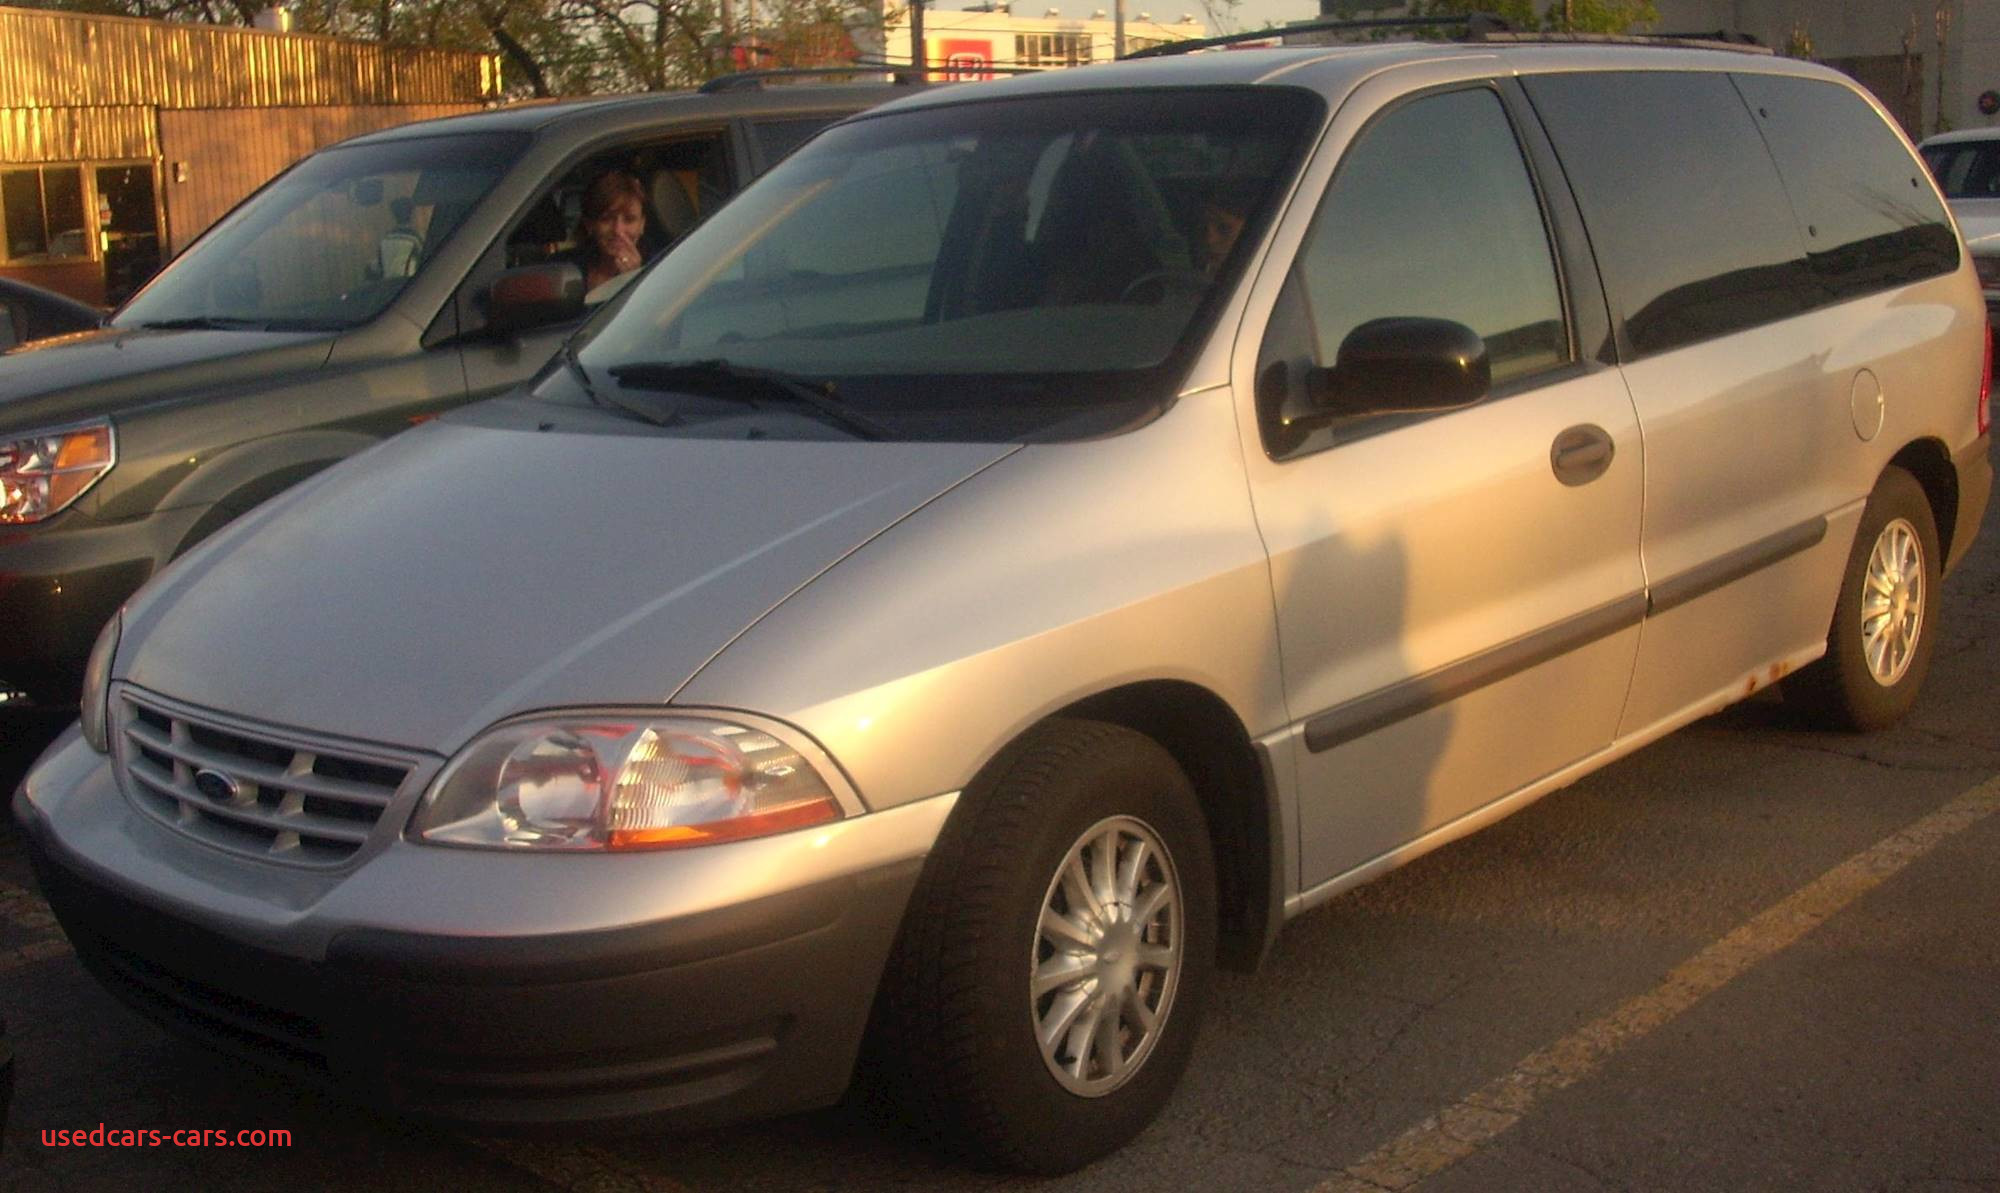 Ford Windstar 2002 Fuel Tank Capacity Awesome 2000 ford Windstar Standard 3dr Cargo Van 4 Spd Auto W Od